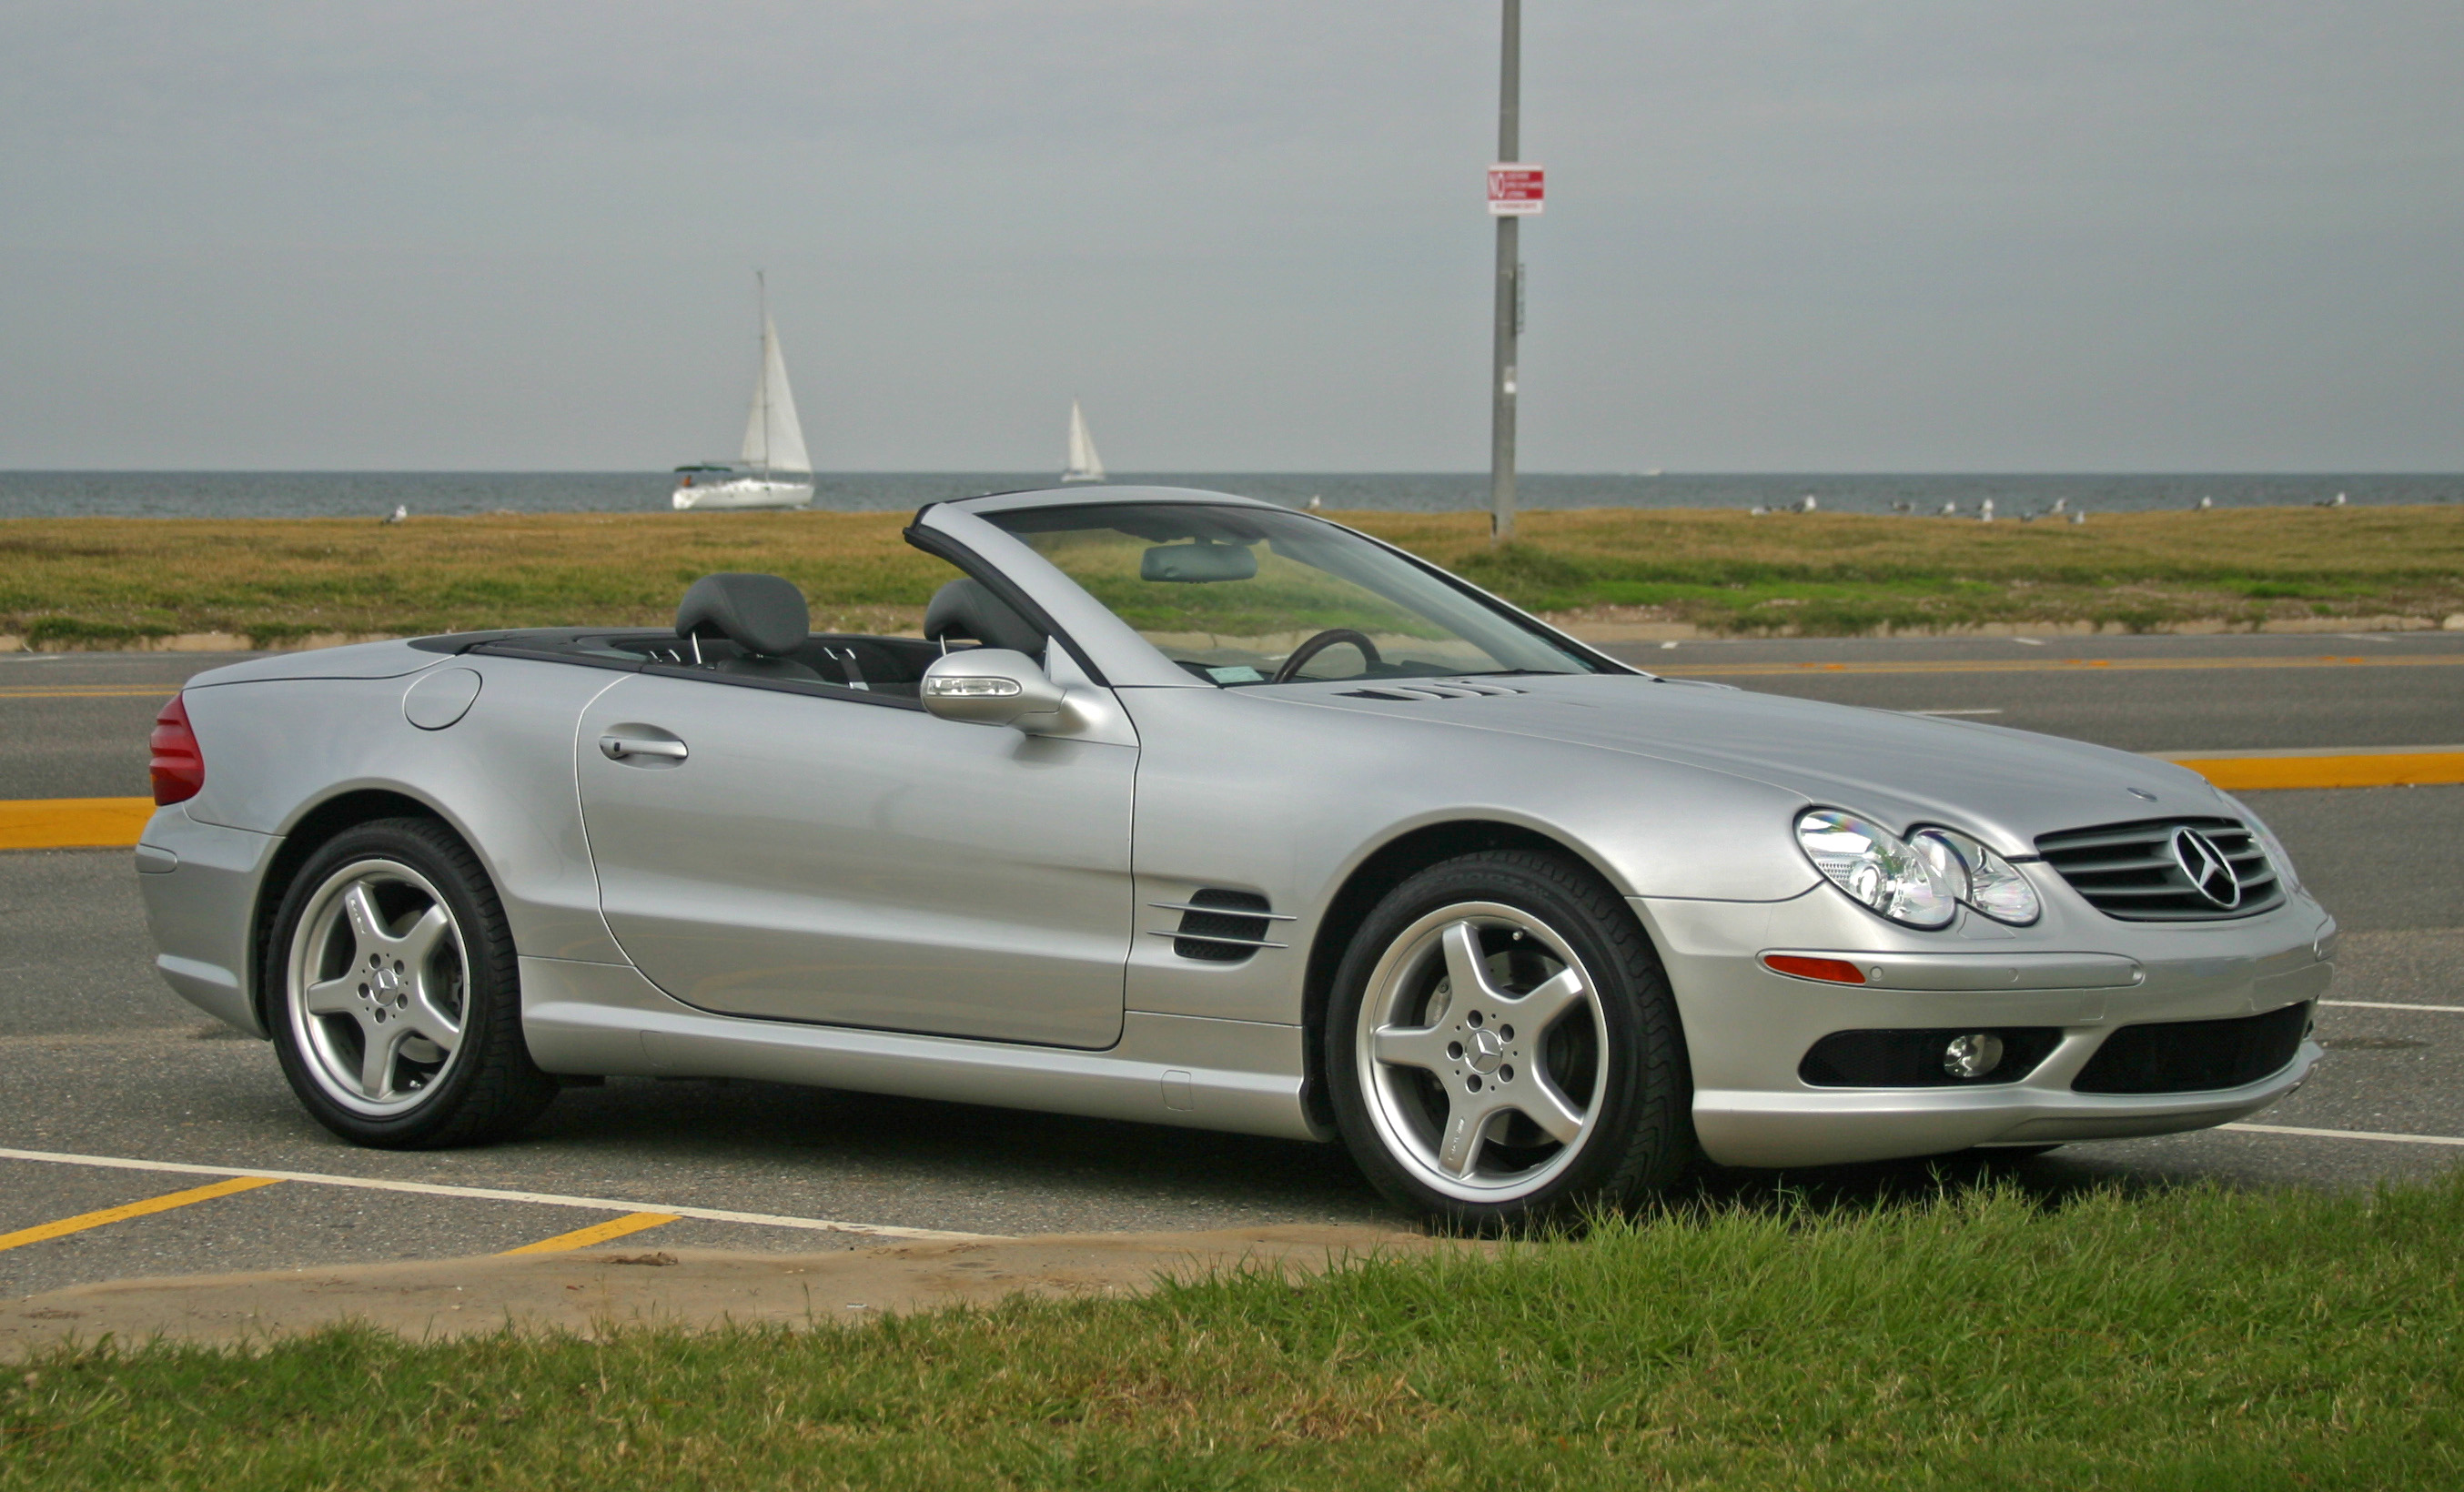 Mercedes benz sl 500 technical details history photos on for Mercedes benz escondido parts